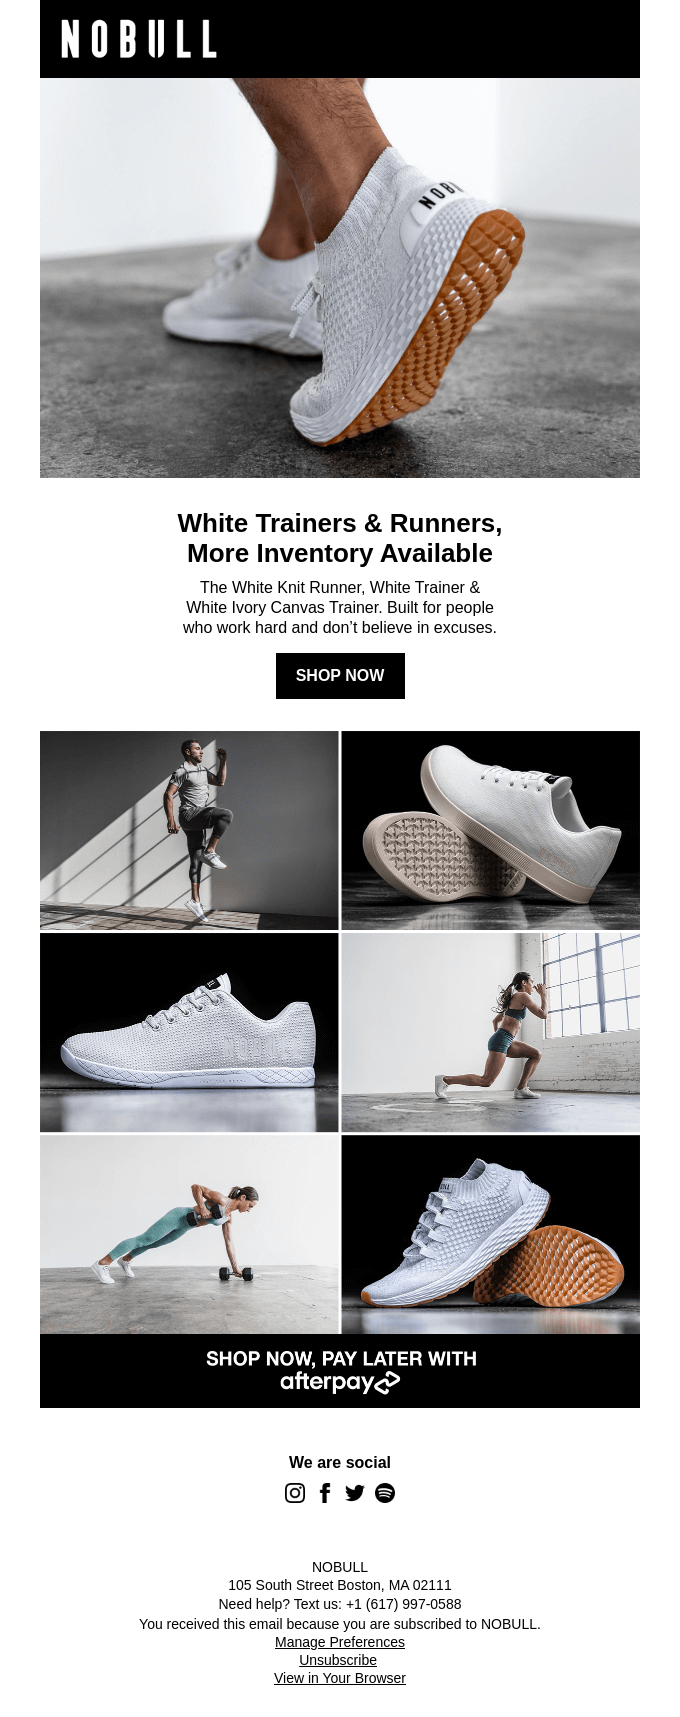 More inventory available, White Trainers & Runners.